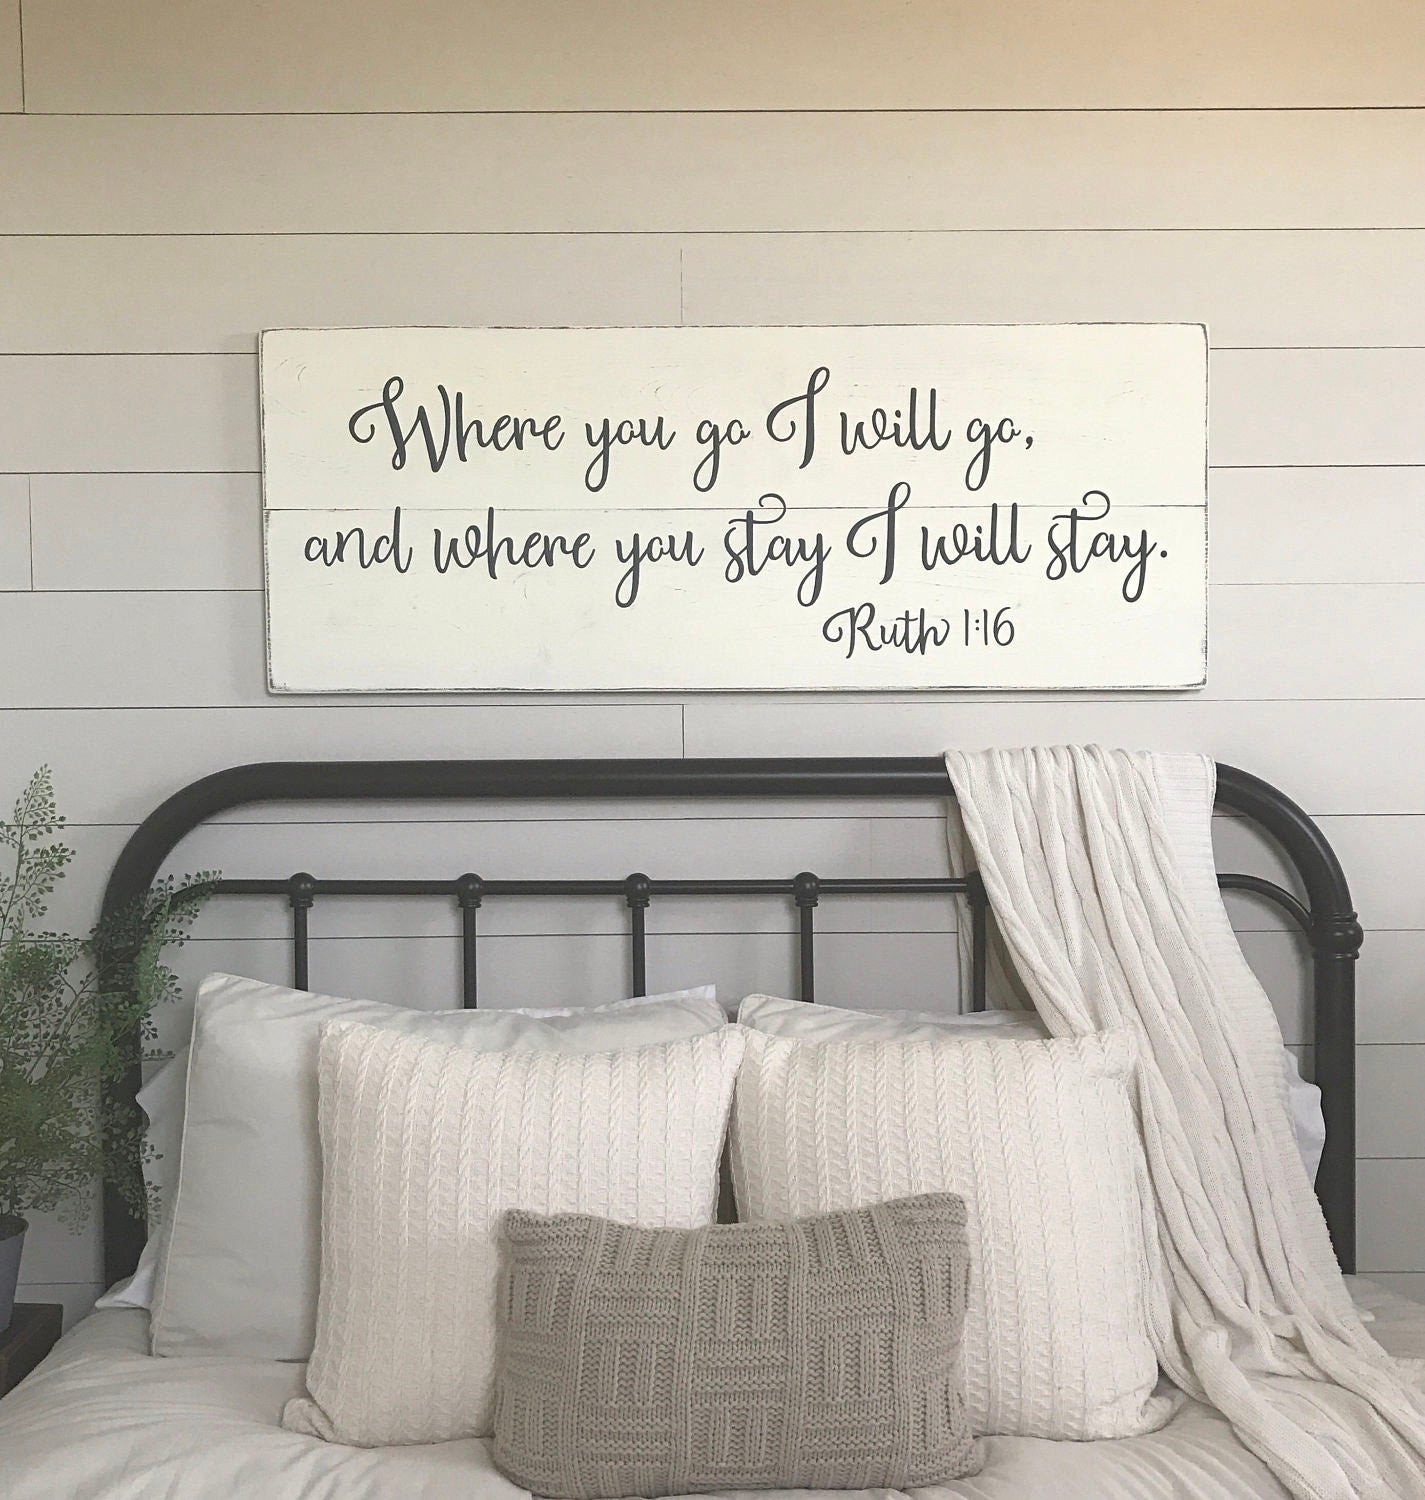 Wall Decor for Master Bedroom Inspirational Bedroom Wall Decor where You Go I Will Go Wood Signs